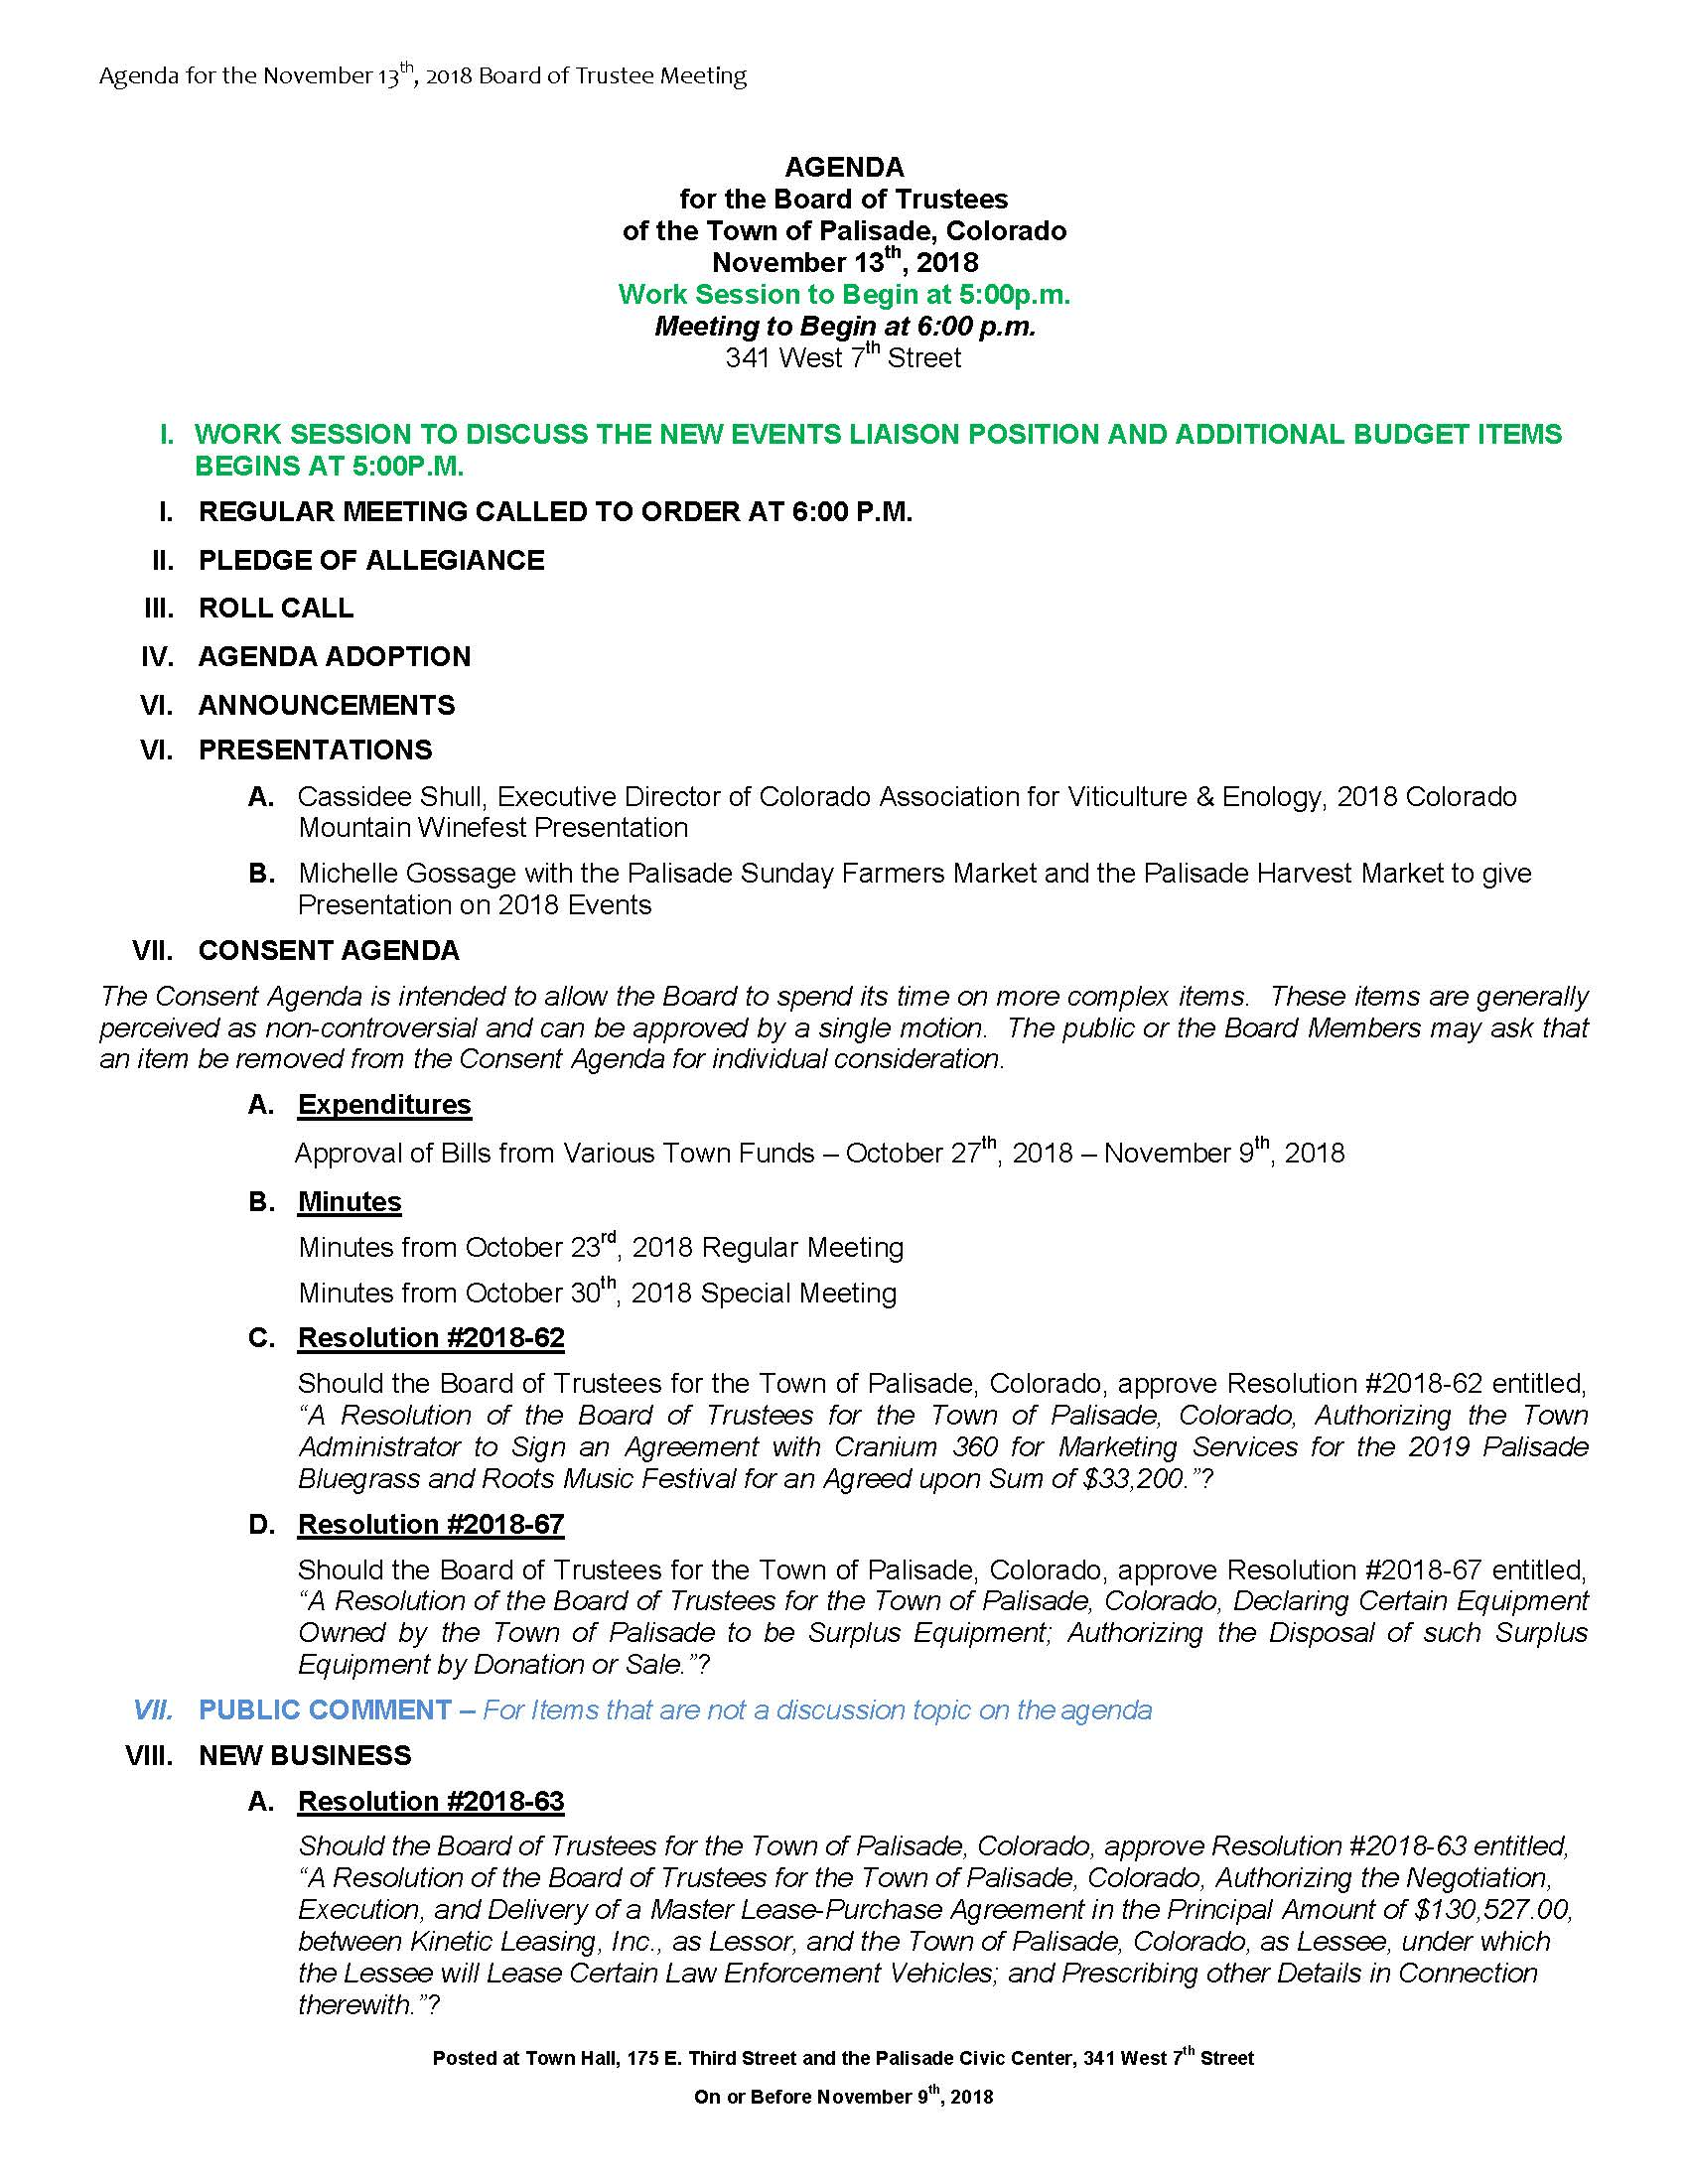 November 13th 2018 Board Meeting Agenda Page 1